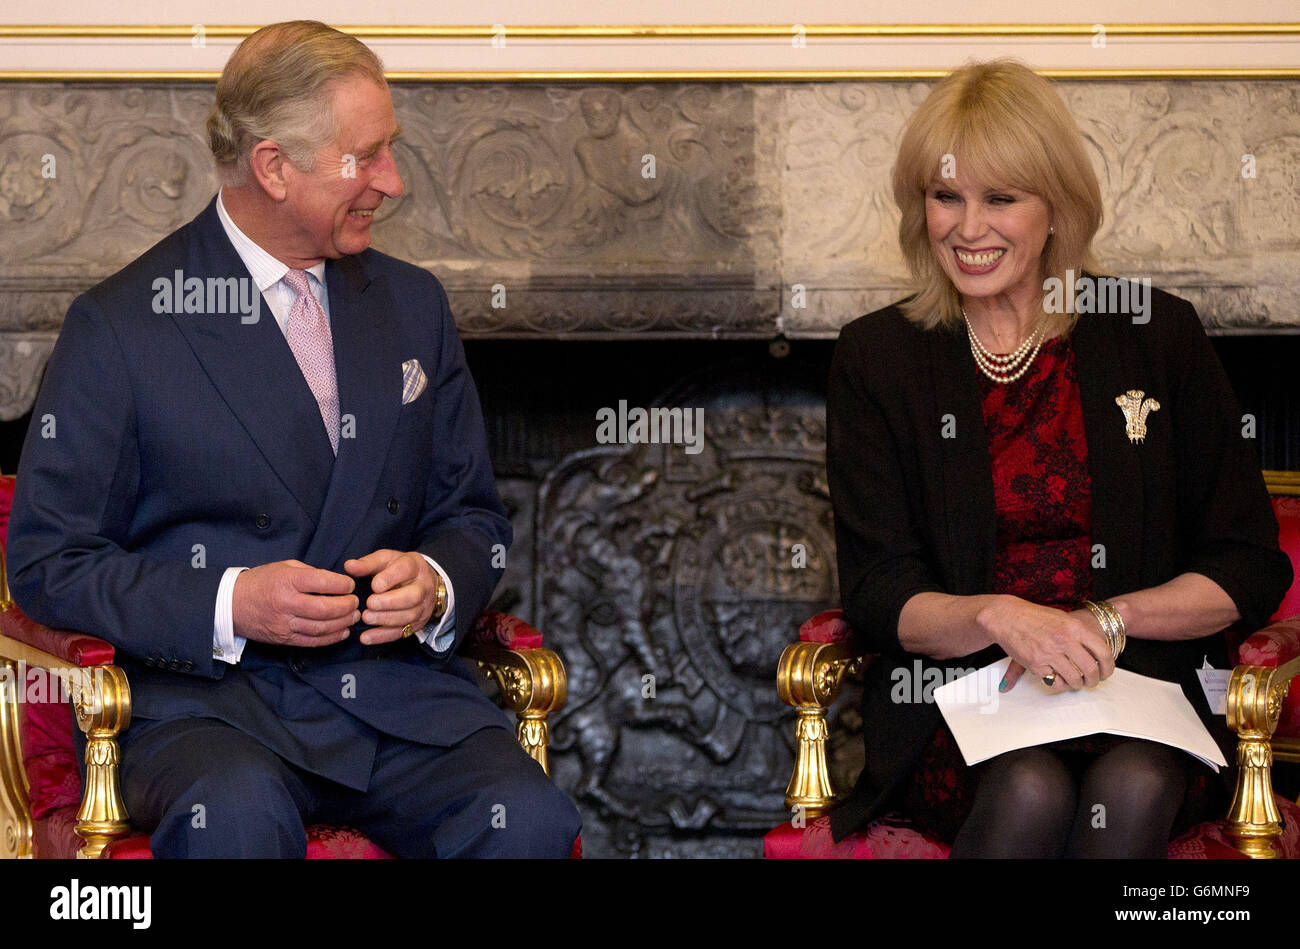 Prince Charles presents arts awards Stock Photo